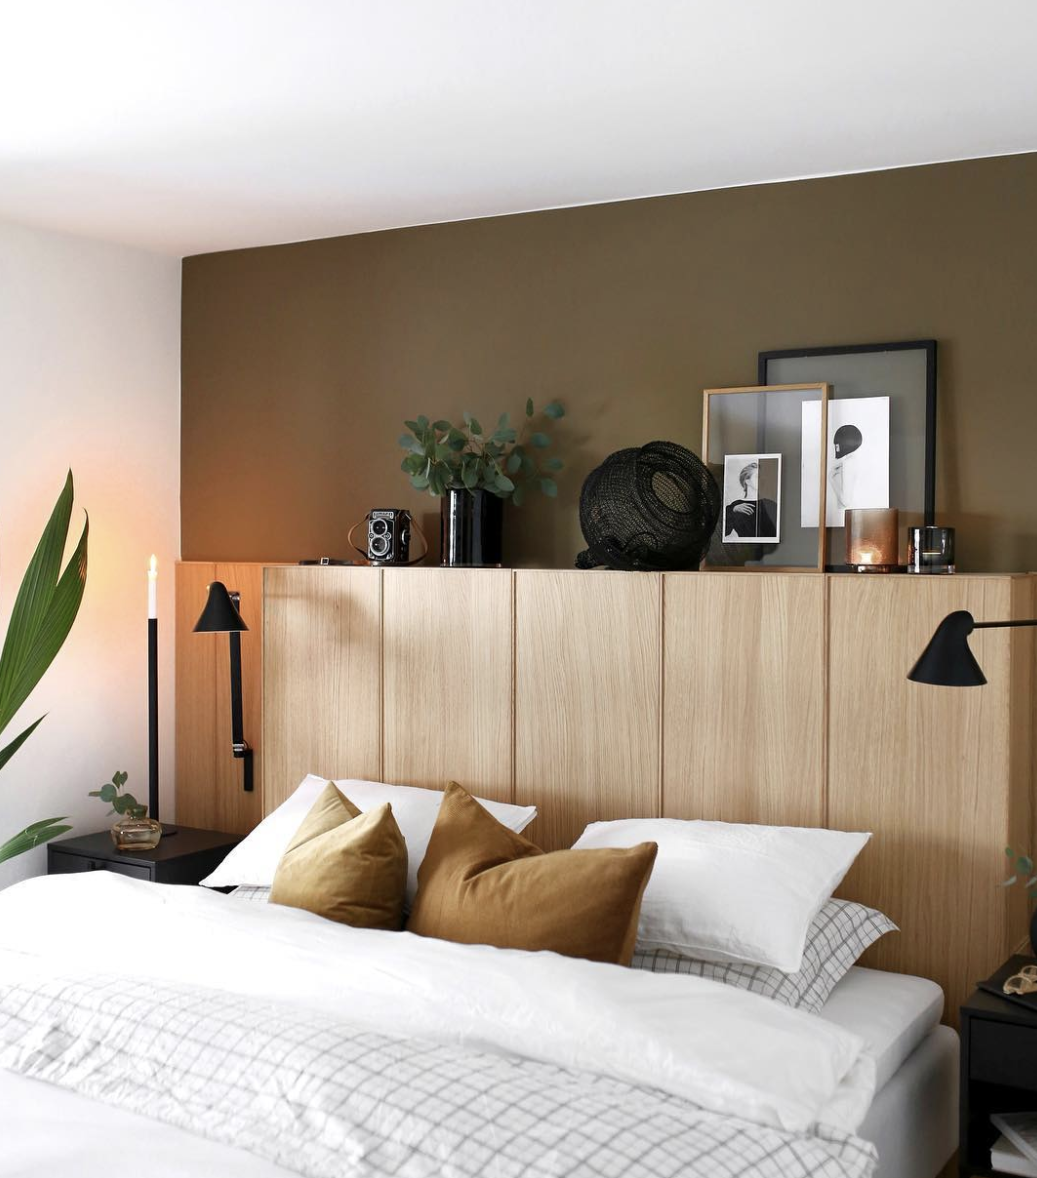 11 Ikea Bedroom Ideas Perfect For Small Spaces Hunker Small